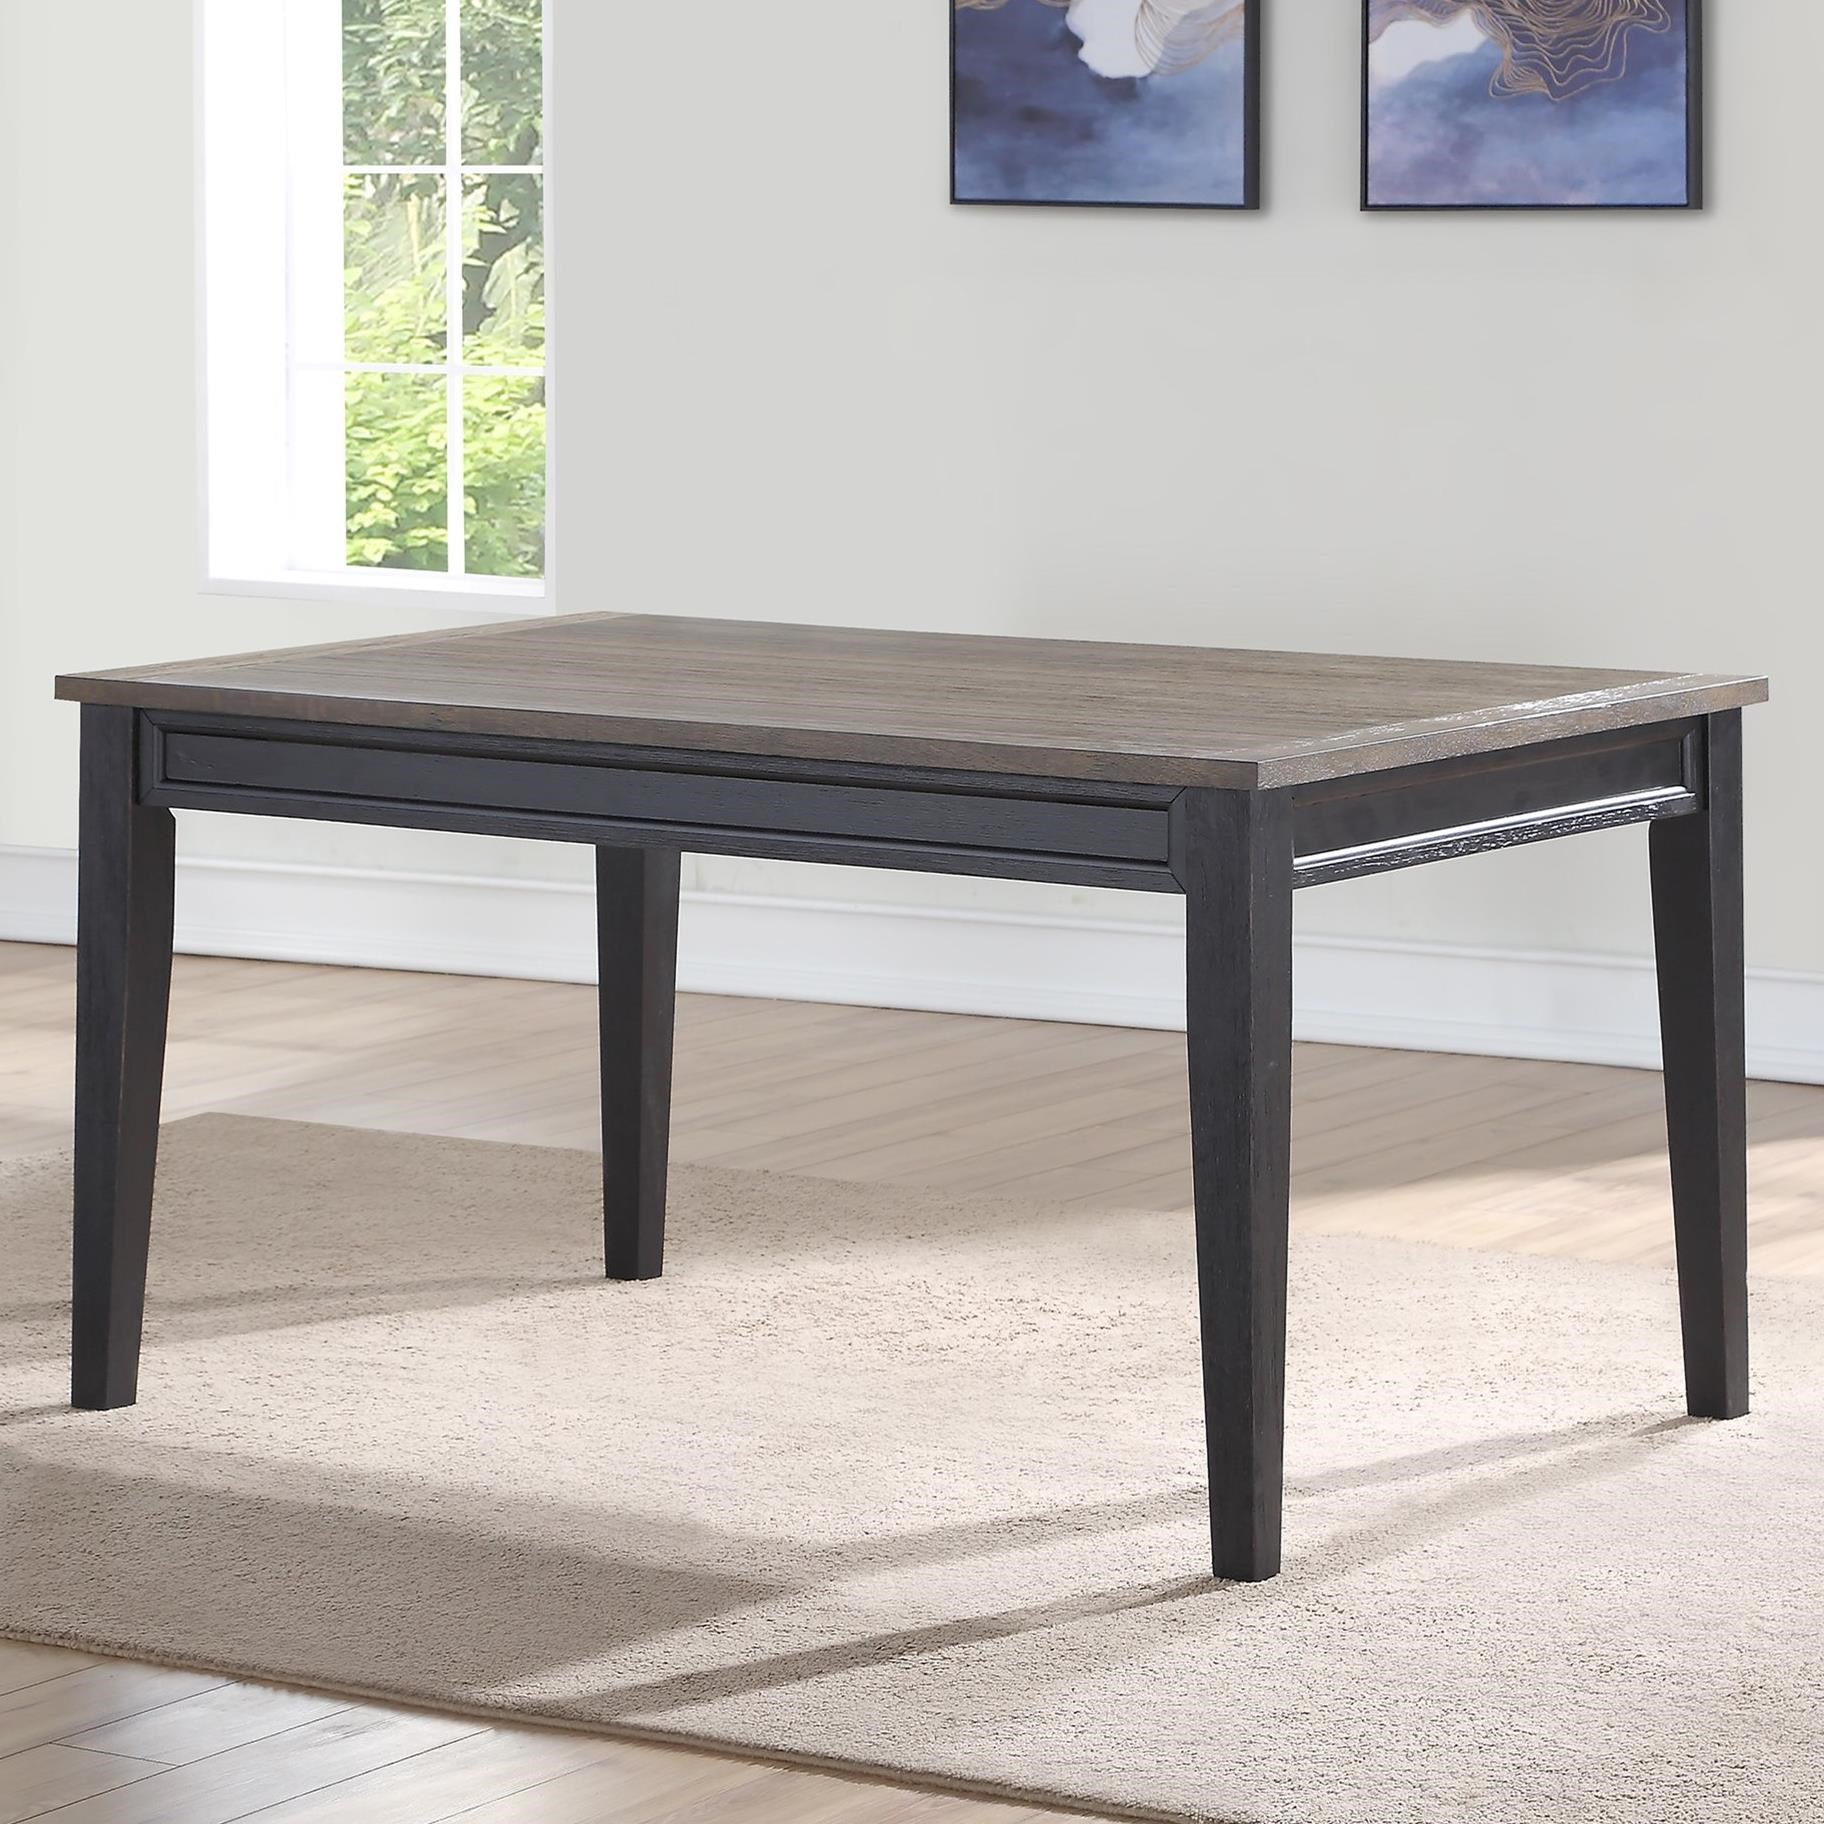 Belfort Essentials Raven Casual Two Tone Dining Table Belfort Furniture Dining Tables